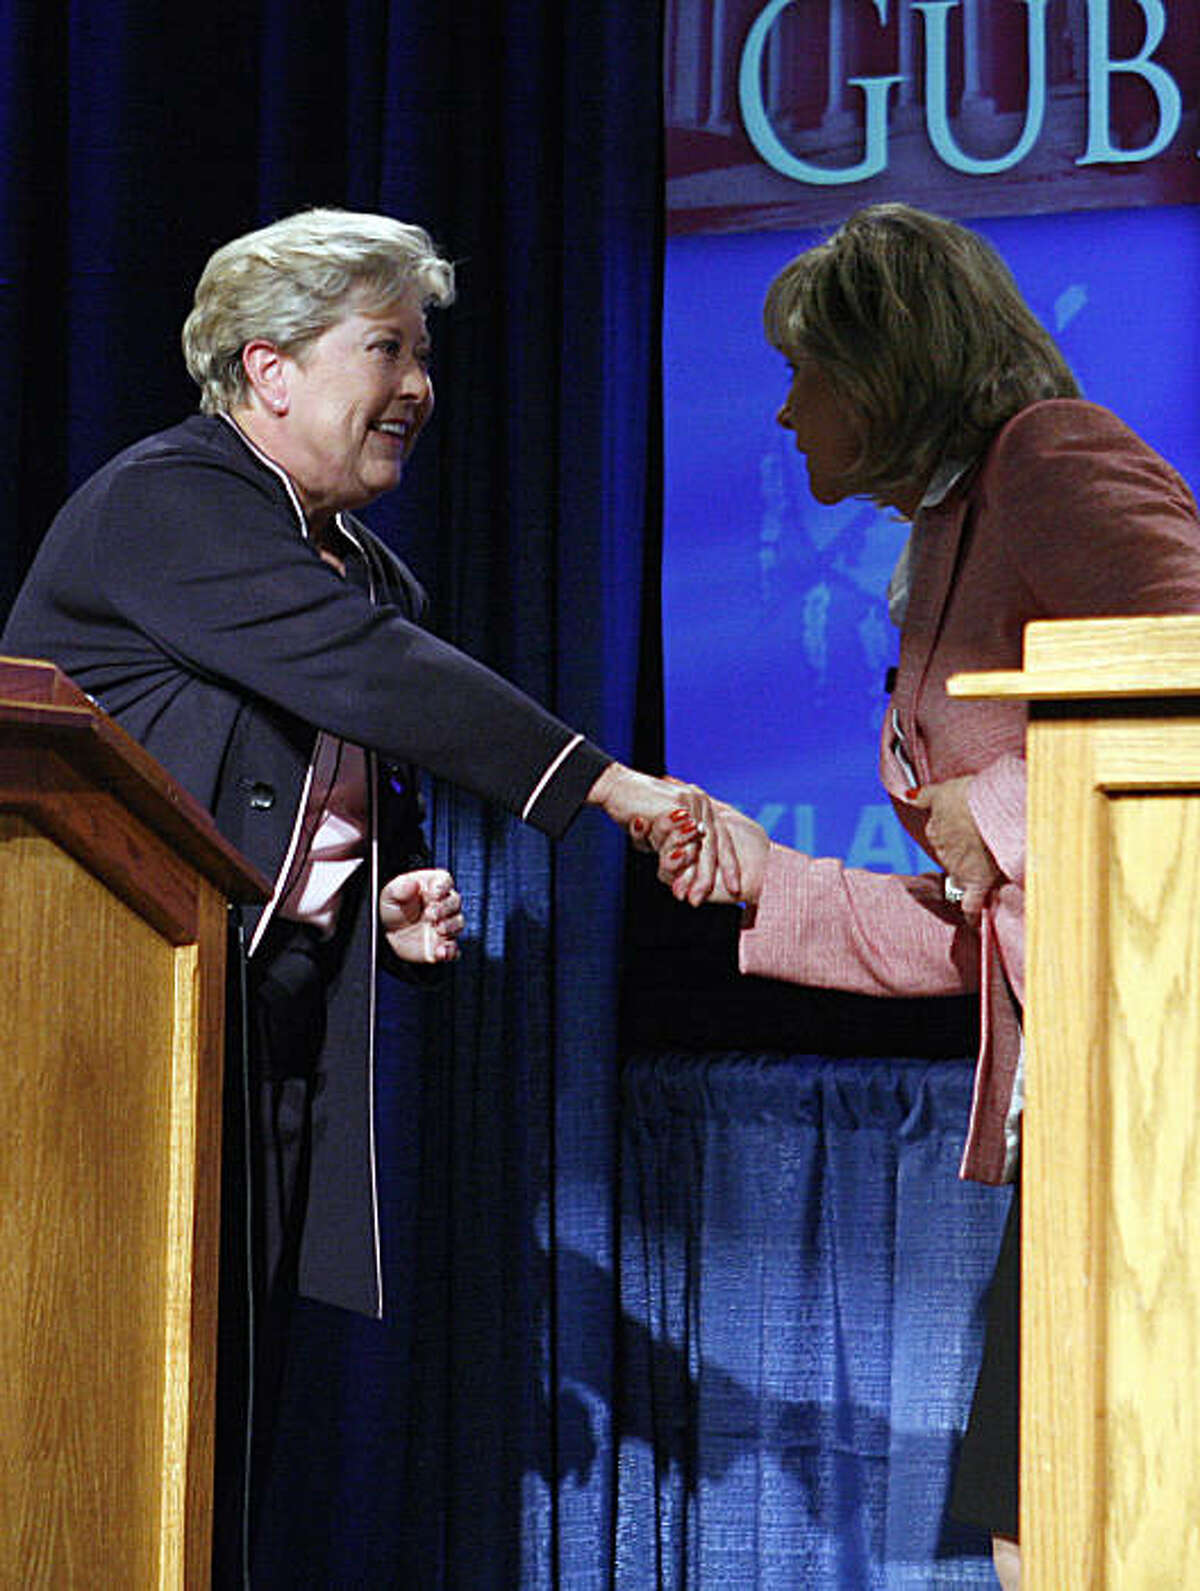 Democrat Lt. Gov. Jari Askins, left, and Rep. Mary Fallin, right, R-Okla., shake hands before a gubernatorial debate on the campus of the University of Central Oklahoma in Edmond, Okla., on Tuesday, Oct. 19, 2010.